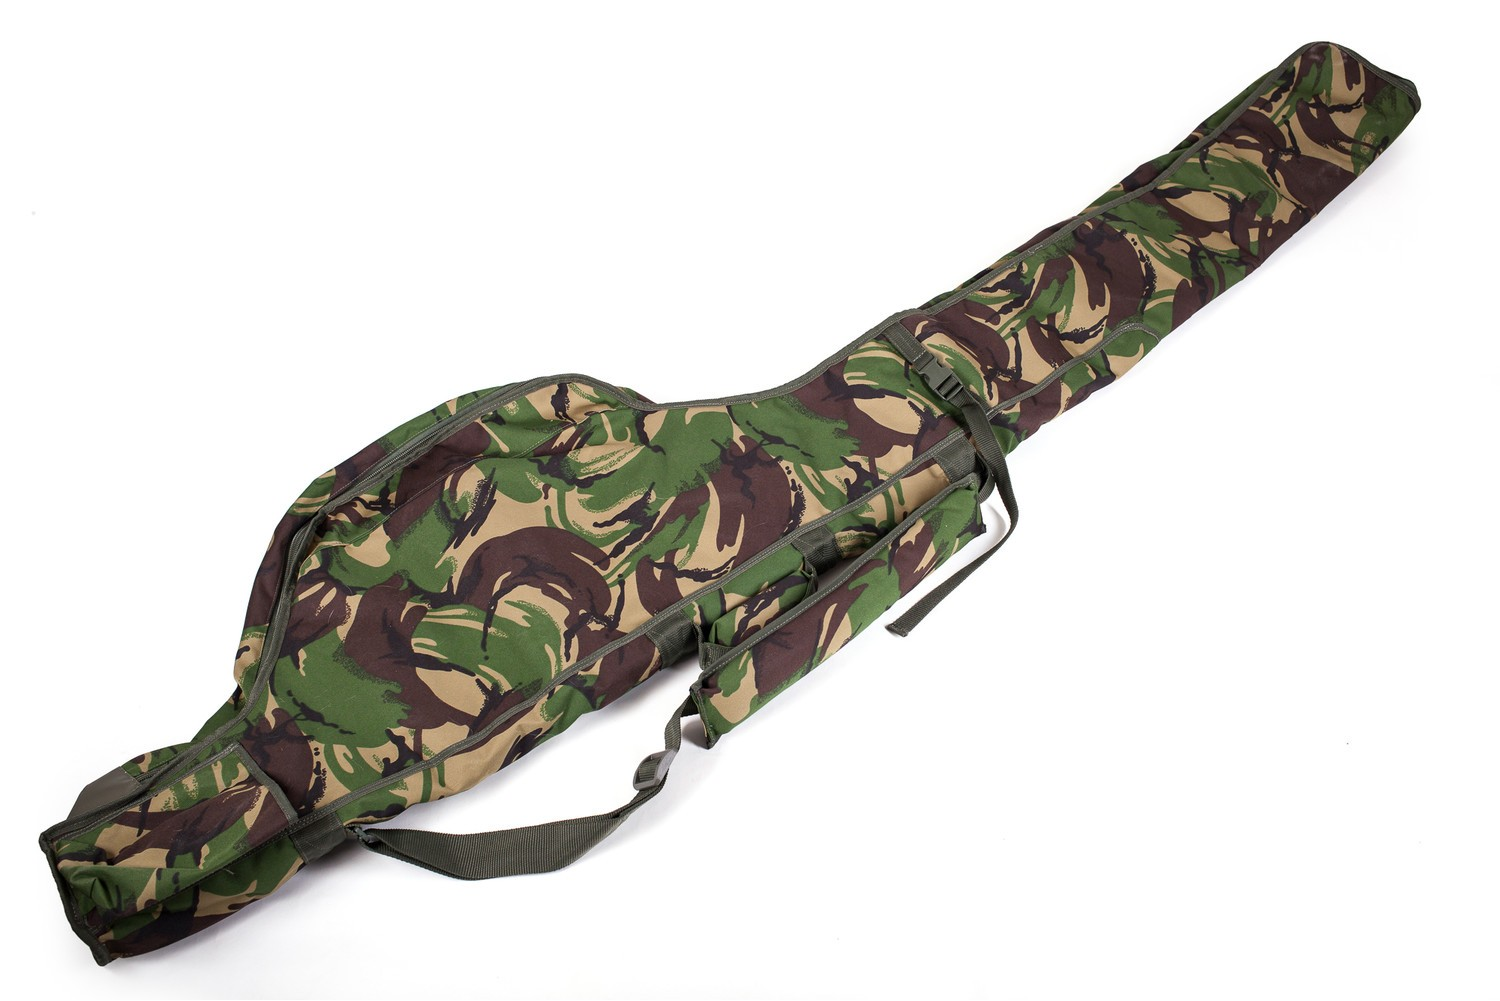 Cotswold Aquarius - Woodland Camo 5 Rod 12ft Trident Rod Holdall